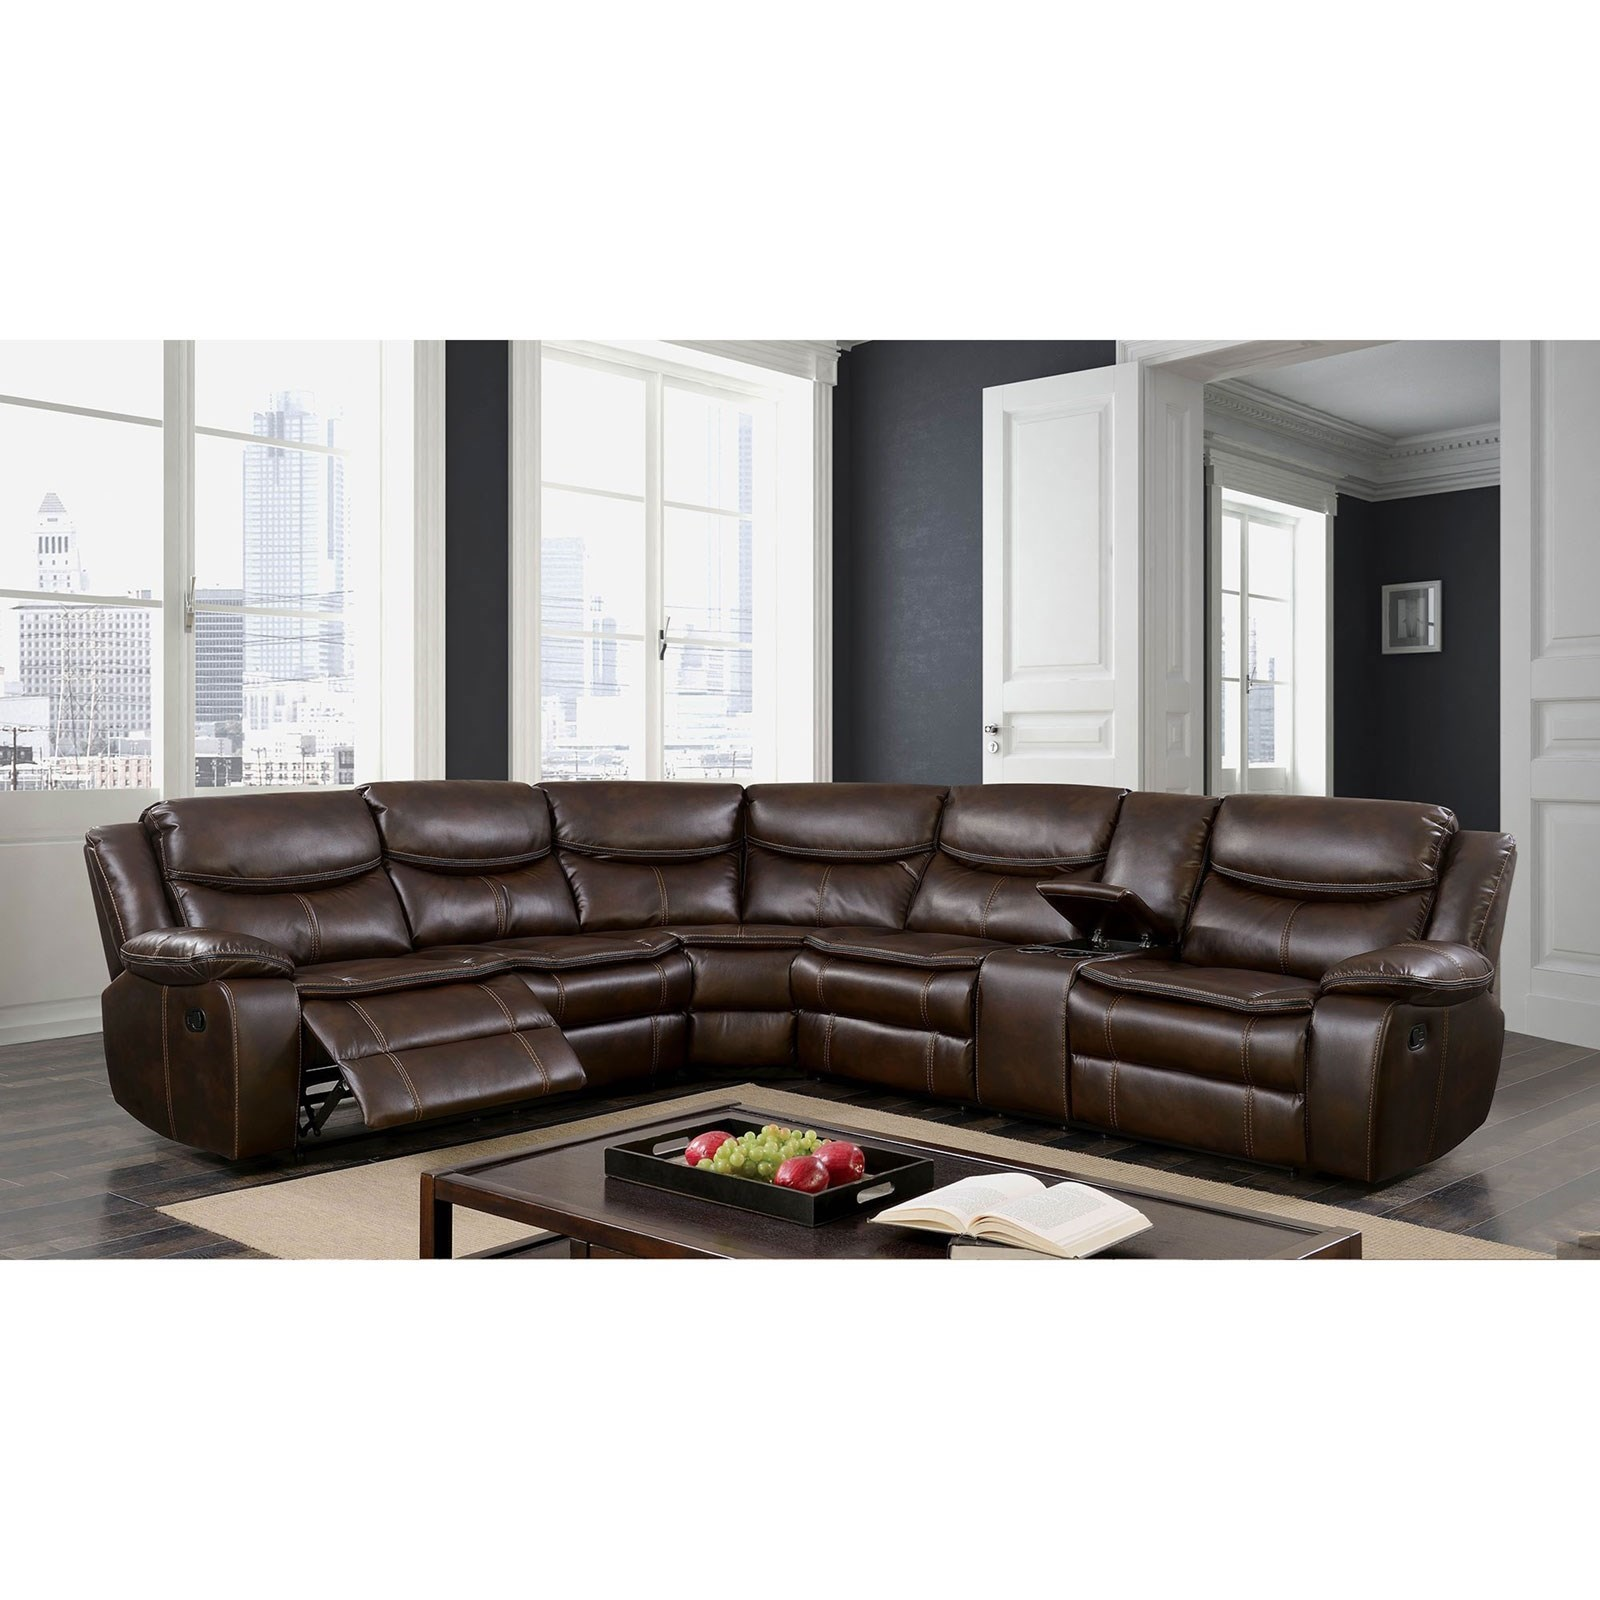 Reclining Sectional w/ Console